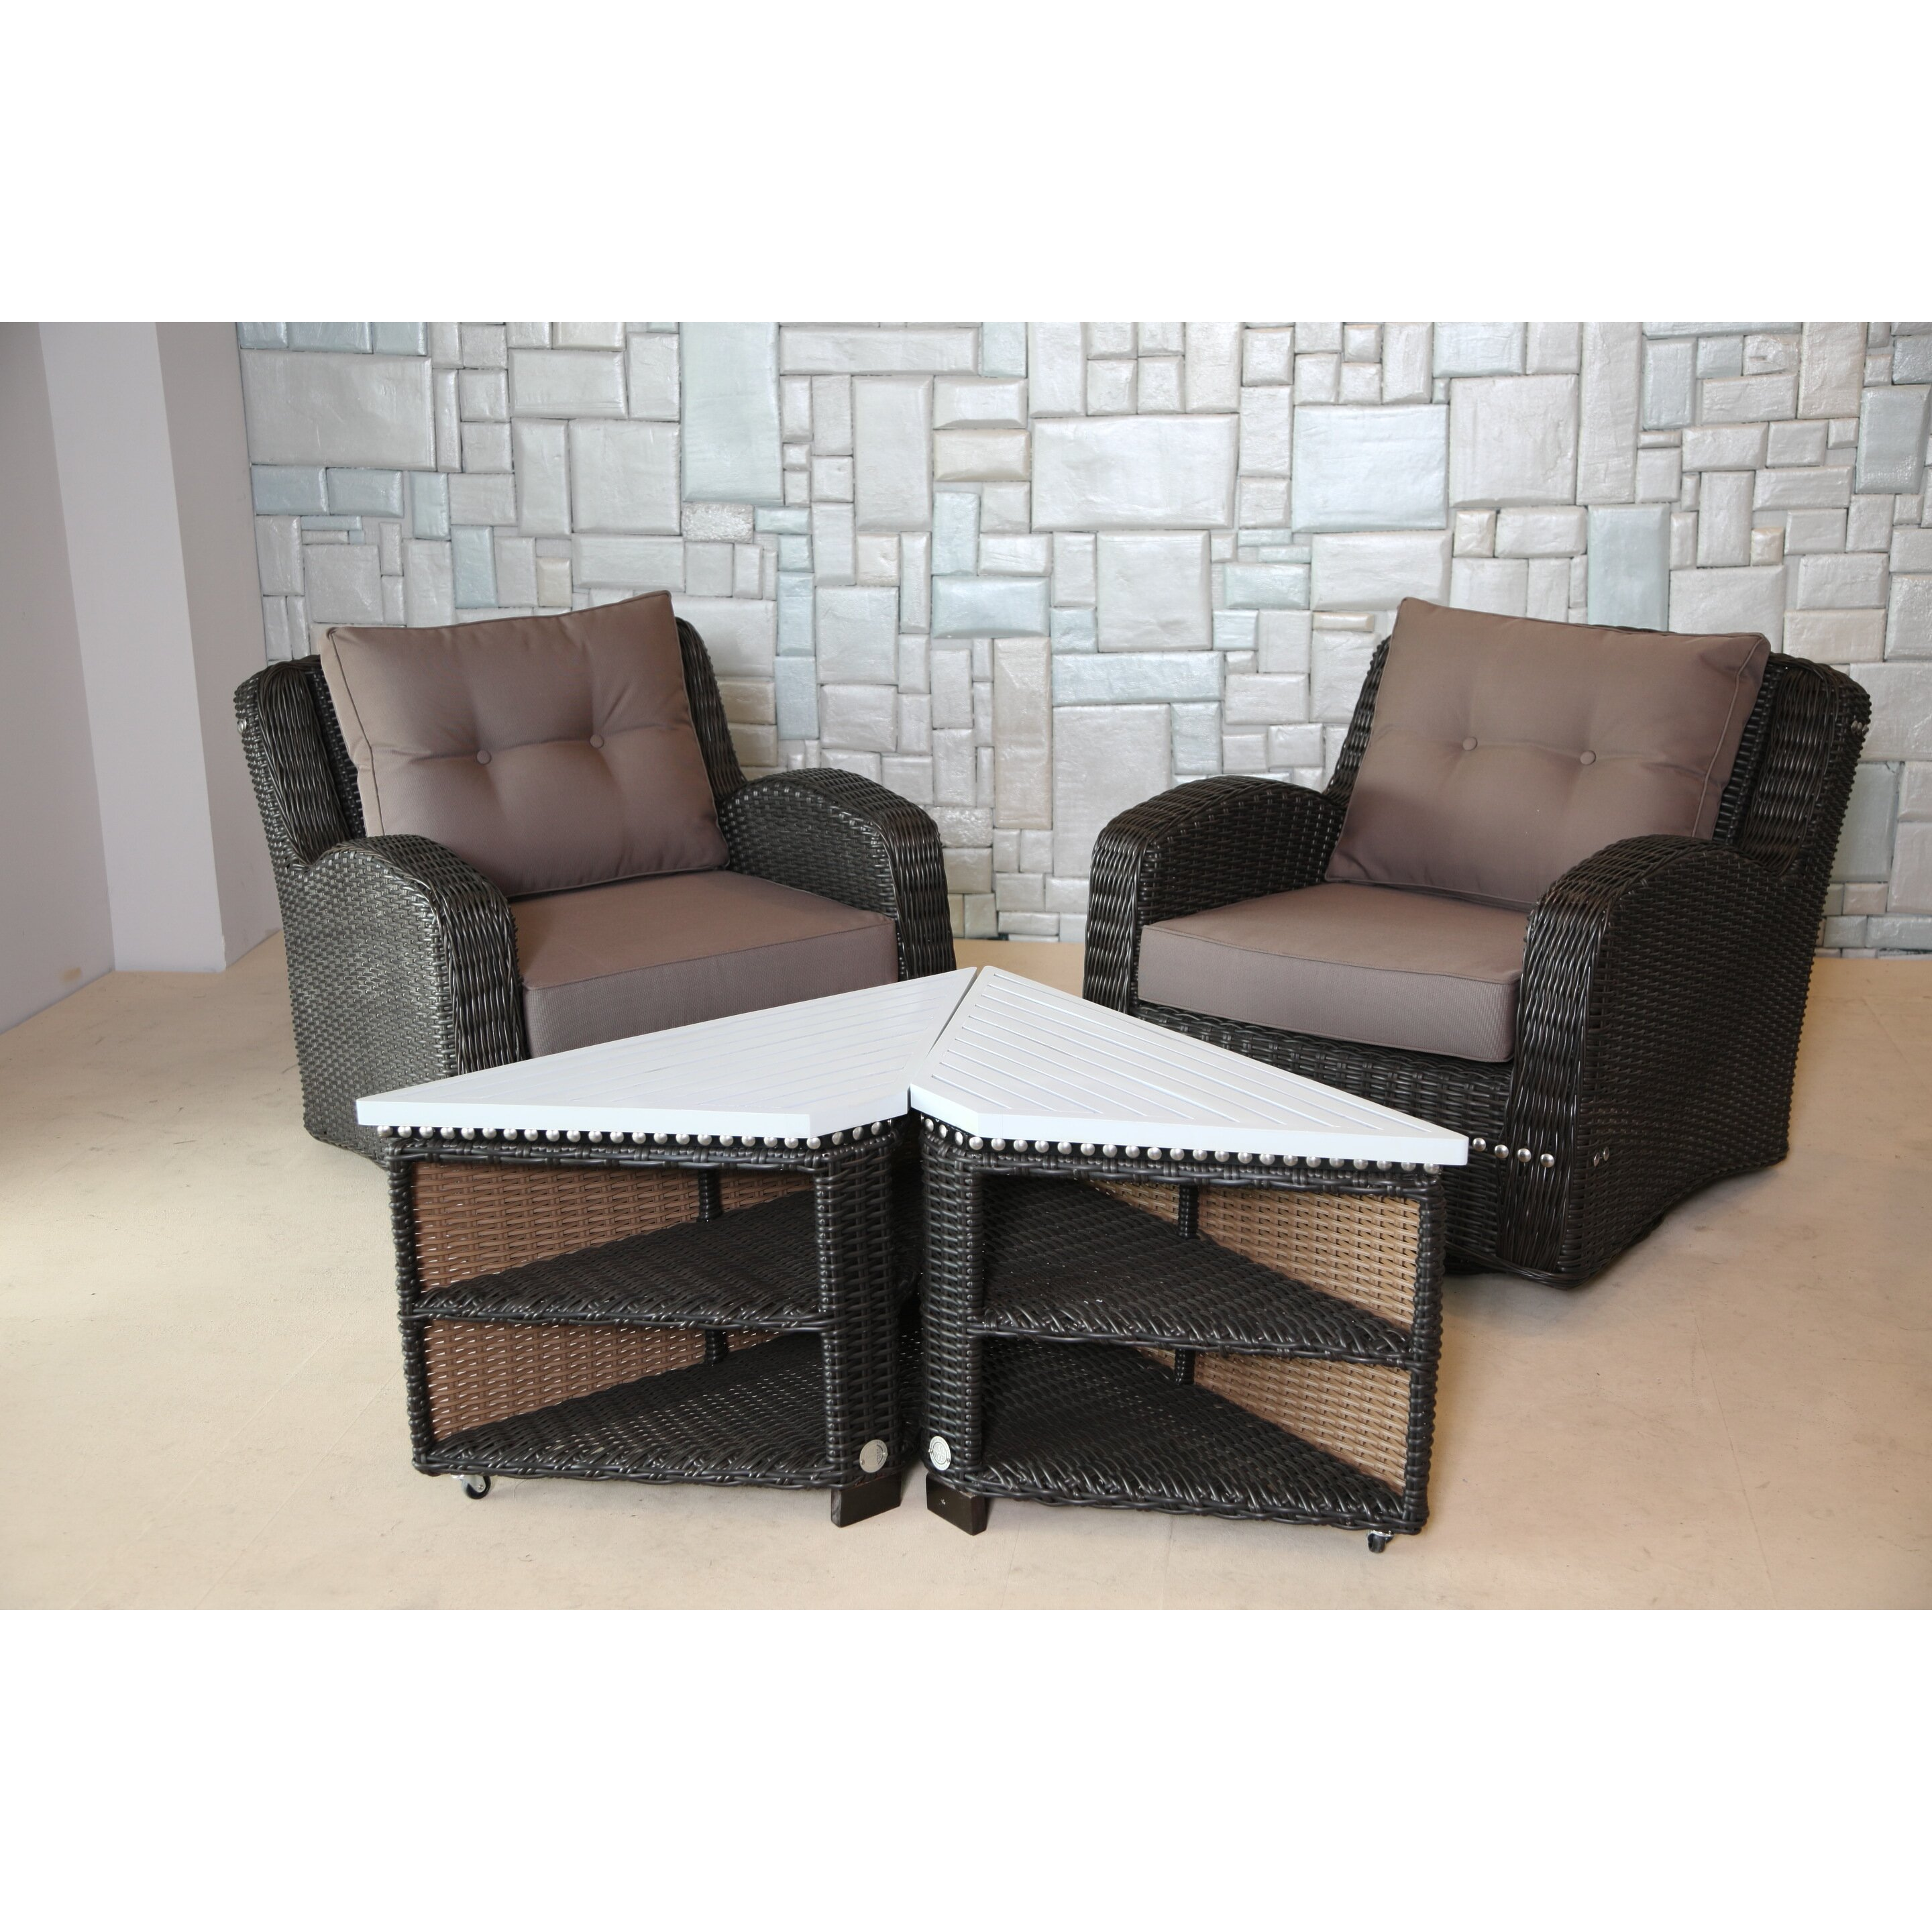 Cane chairs with cushions - Wicked Wicker Furniture Mishka Wicker Swivel Club Chair With Cushion